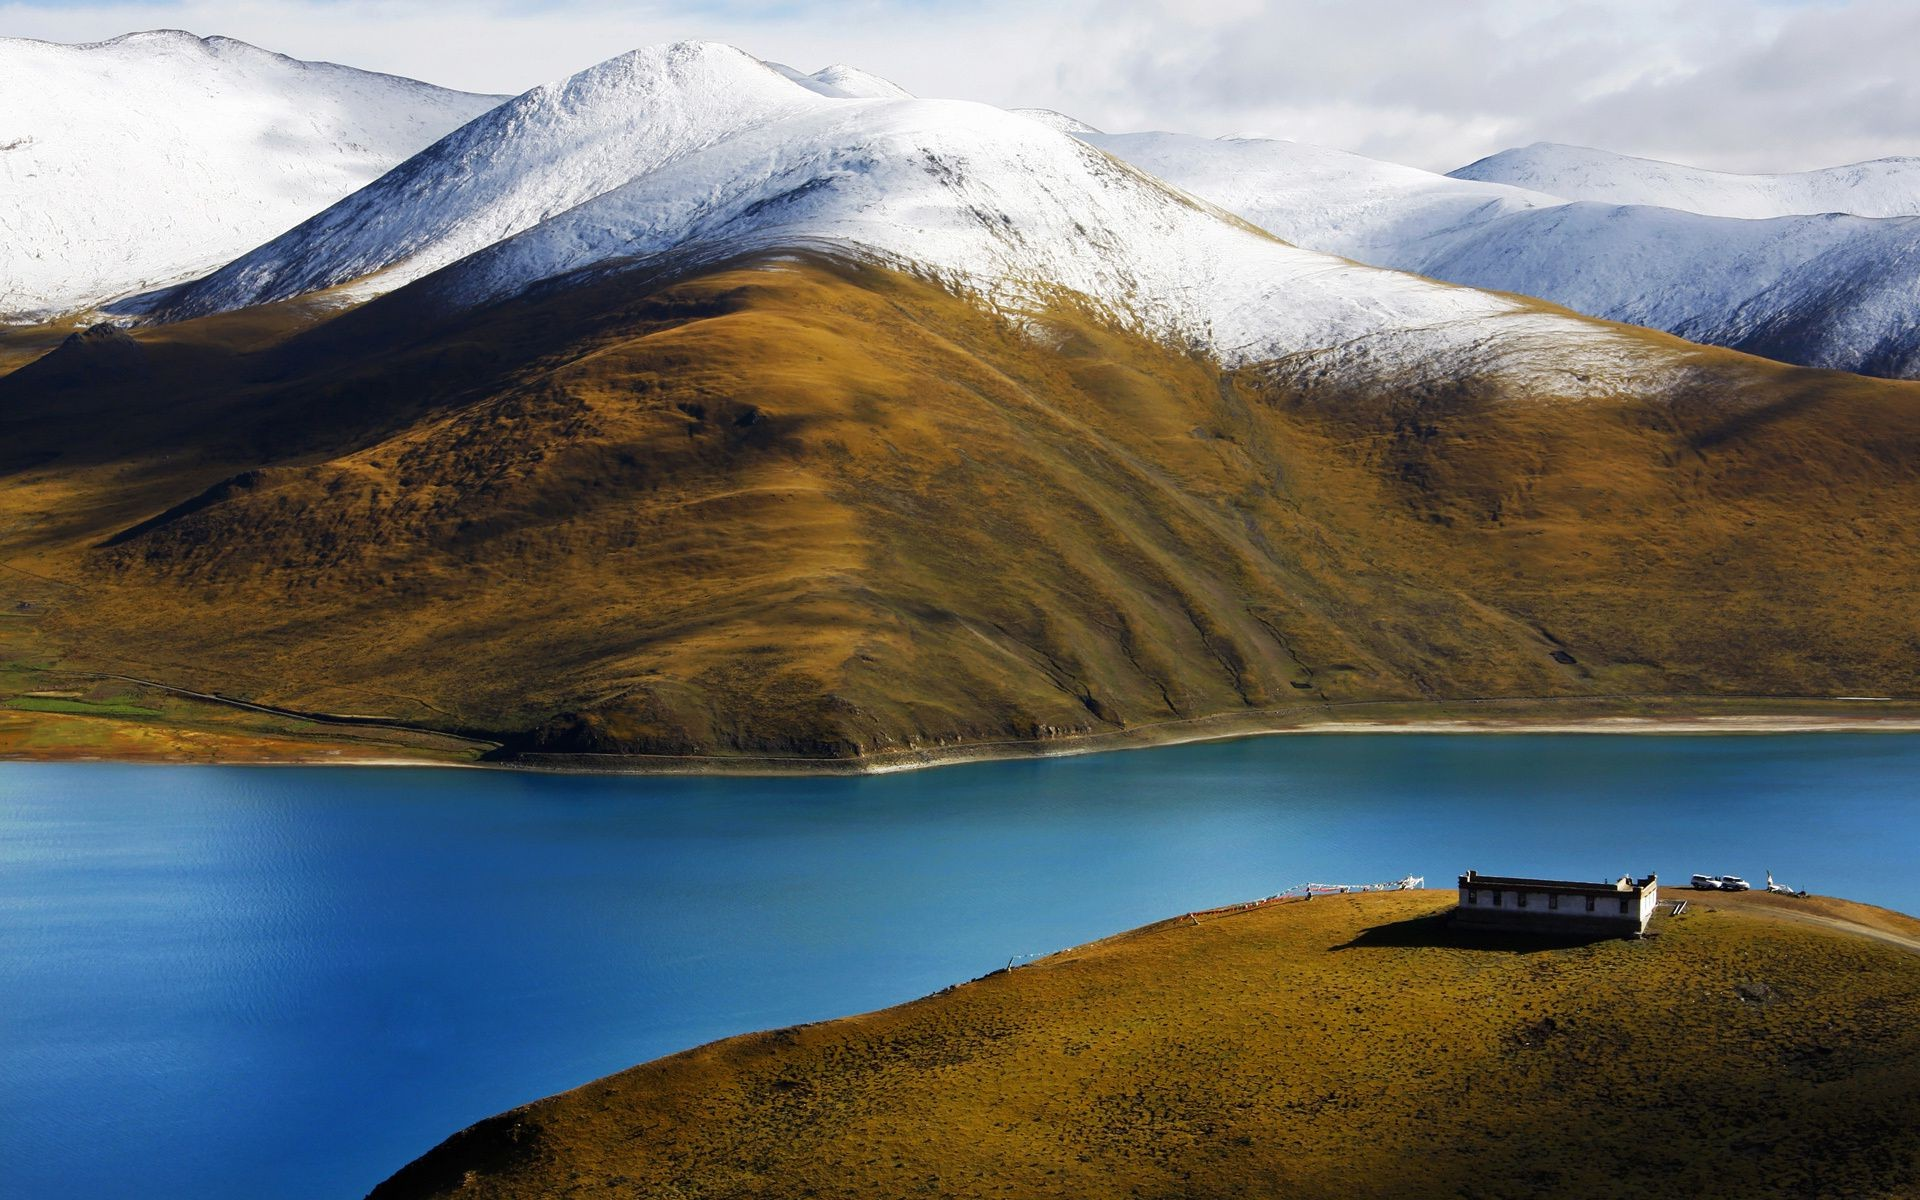 house of Tibet mountains river